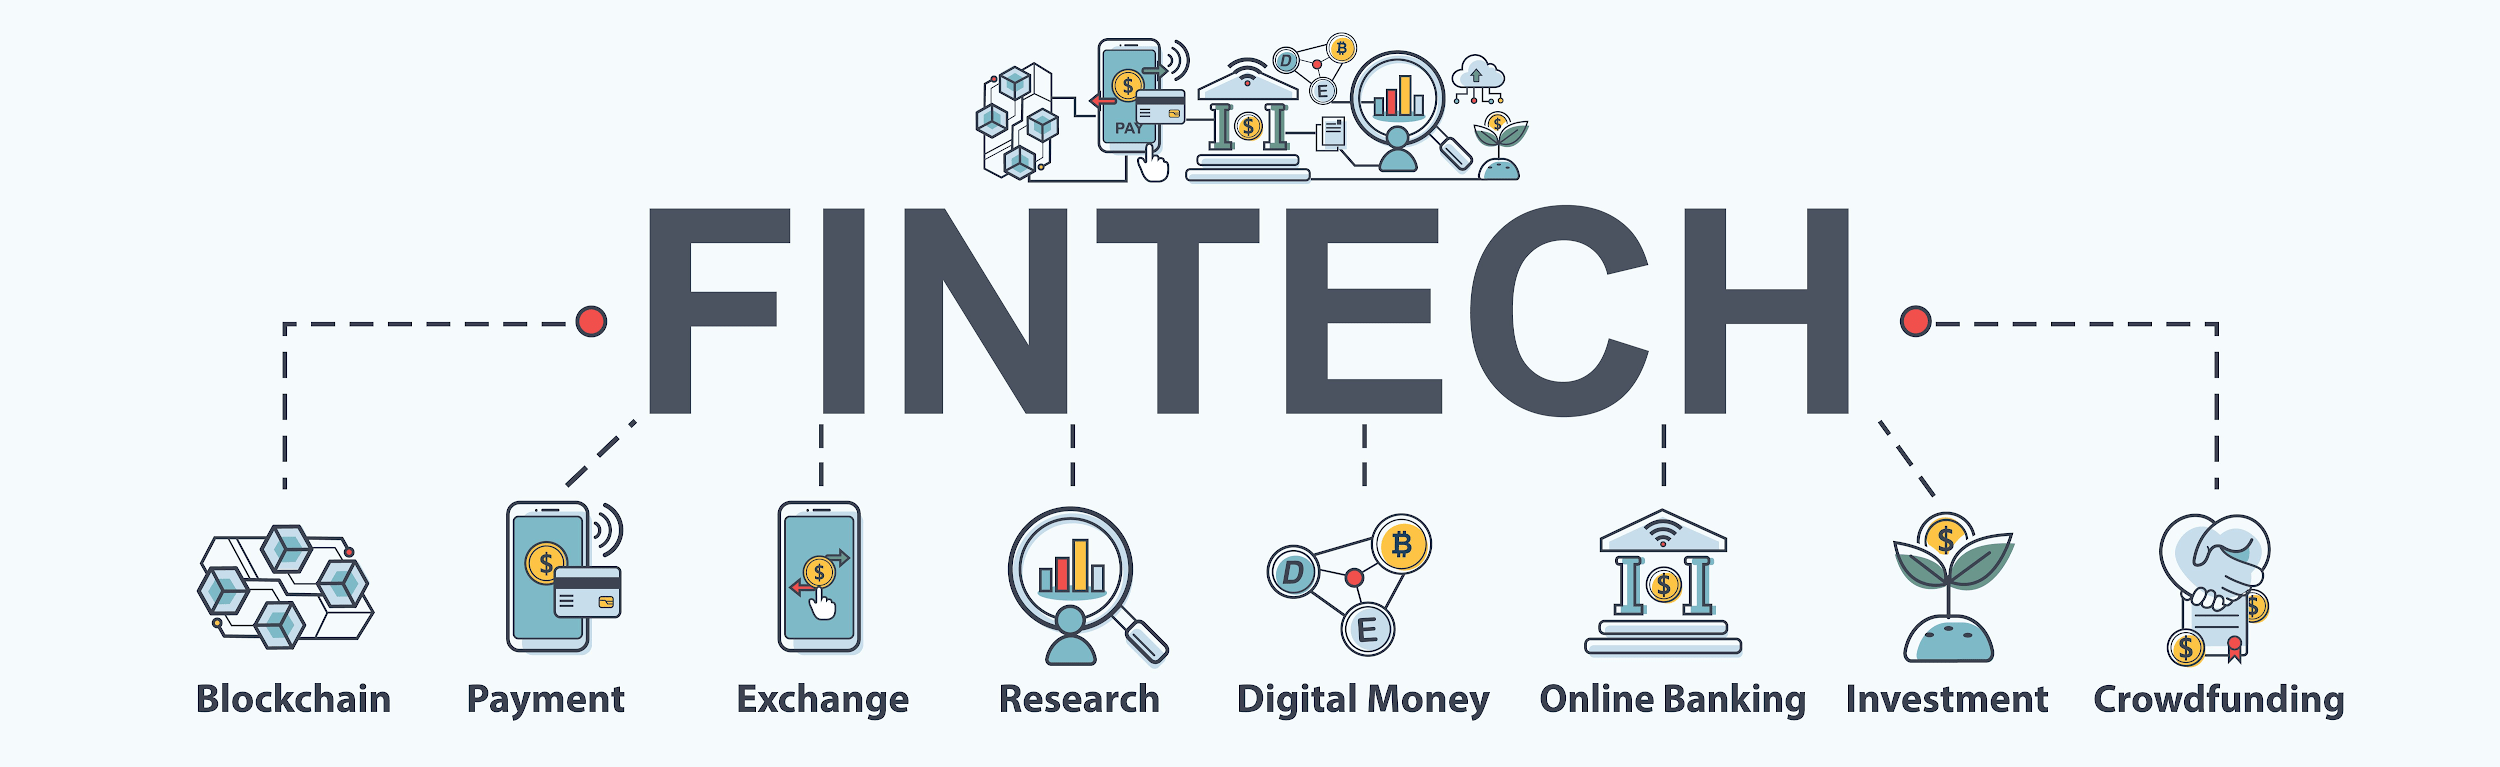 Top Nigerian FinTech Apps that are leading the competition   Nairametrics